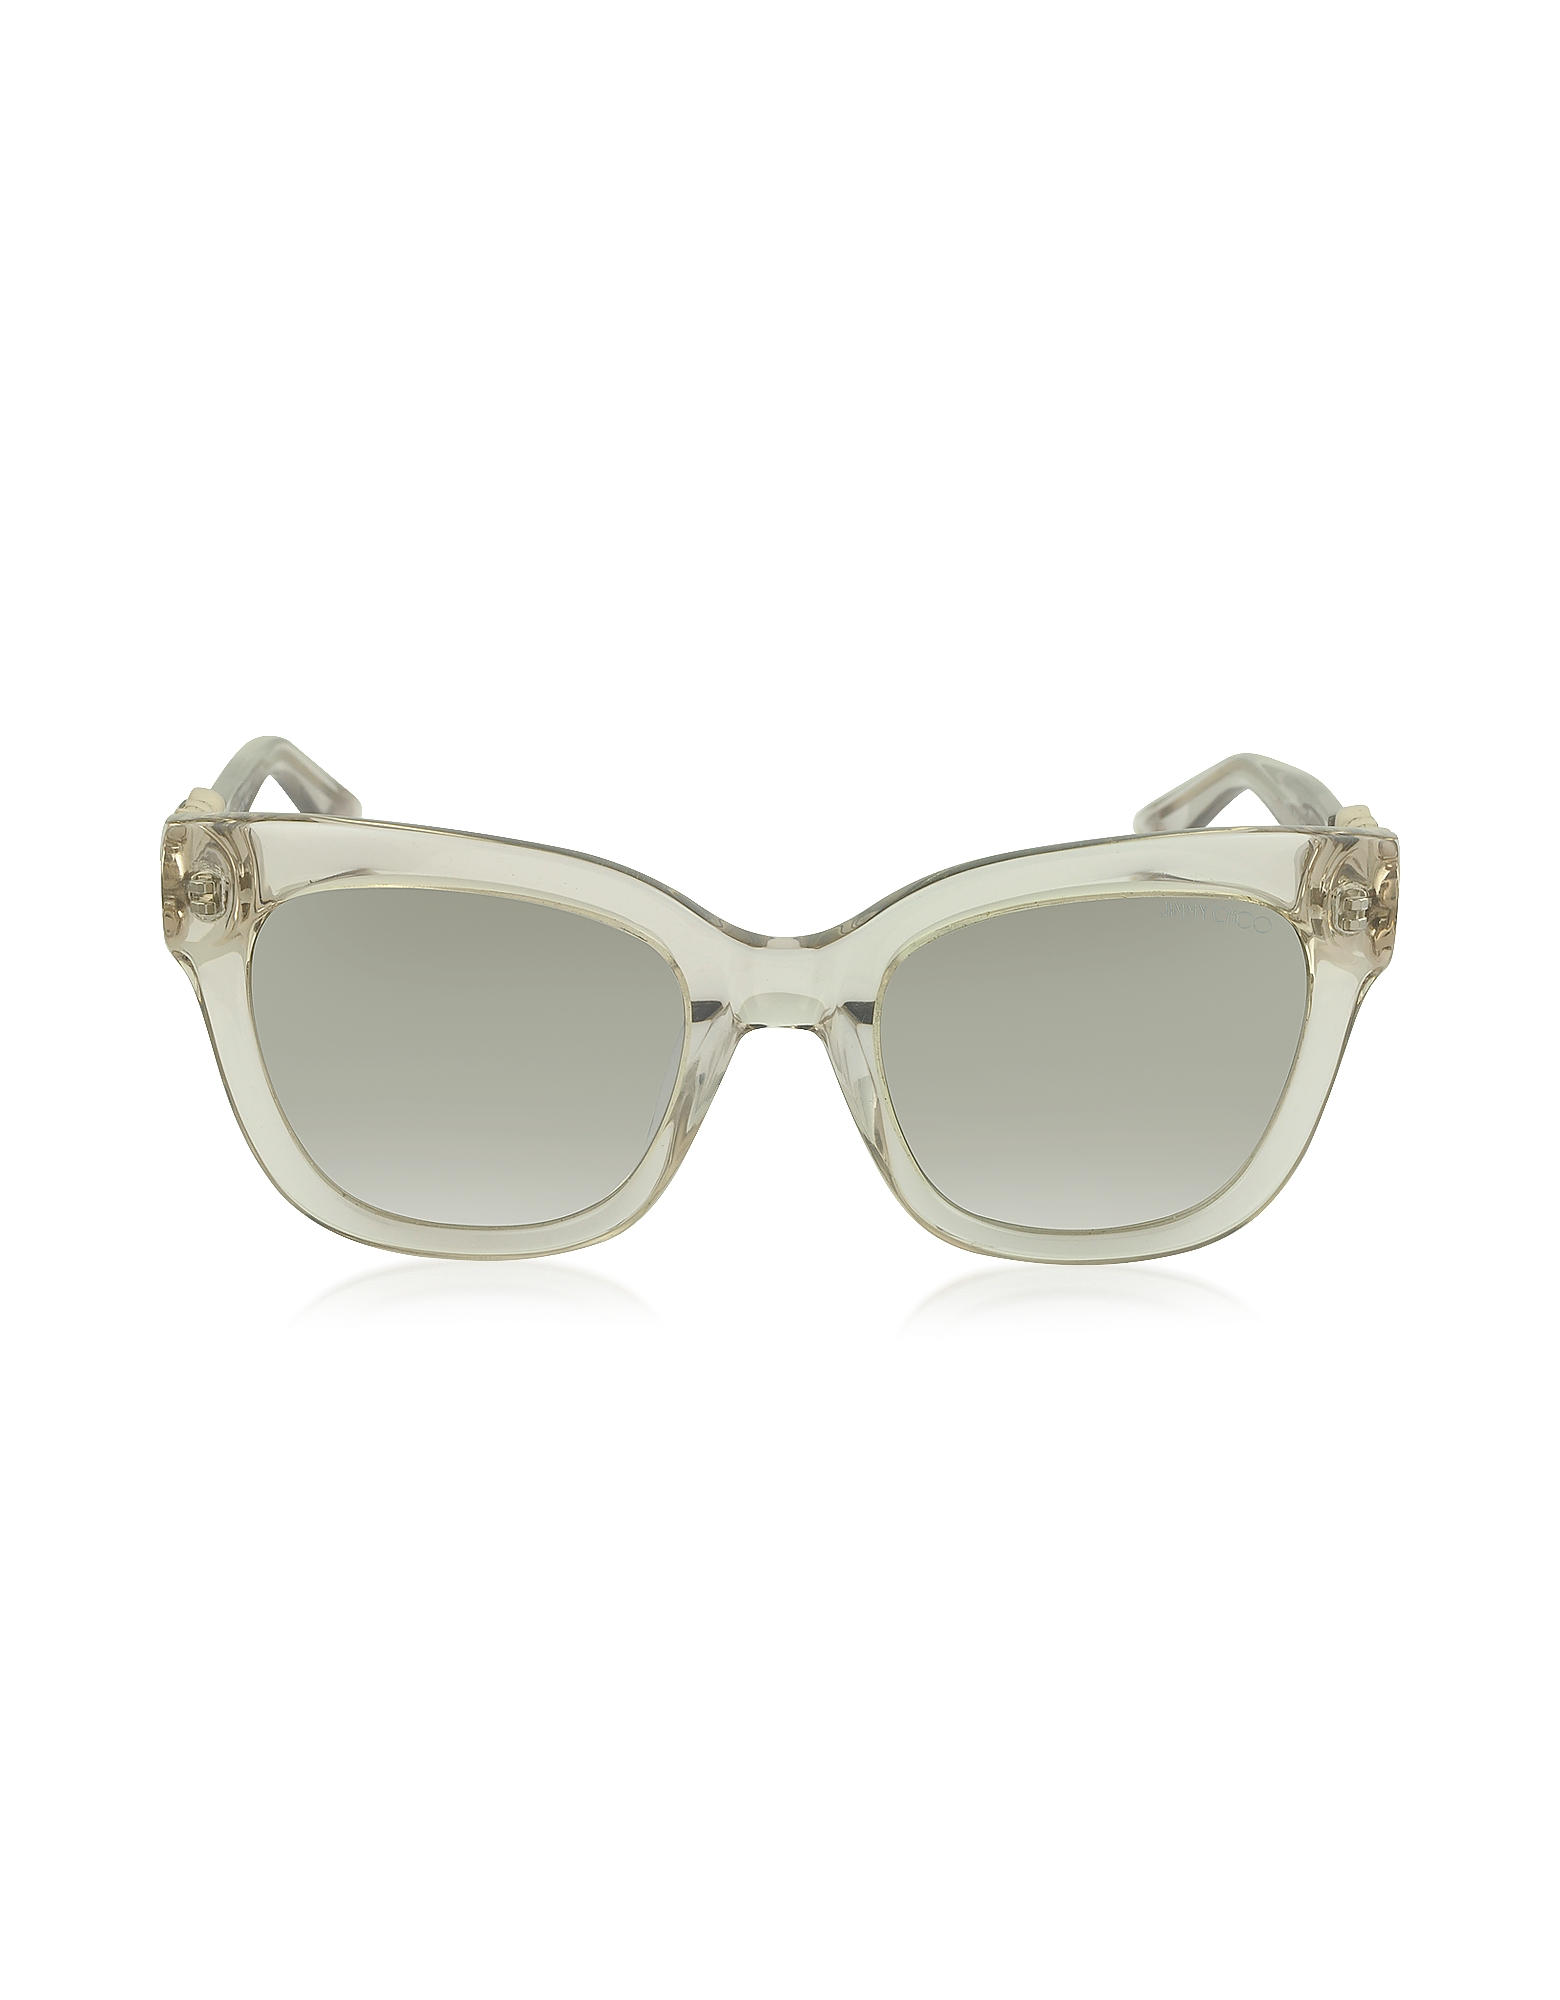 Jimmy Choo Designer Sunglasses, MAGGIE/S Acetate Women's Sunglasses